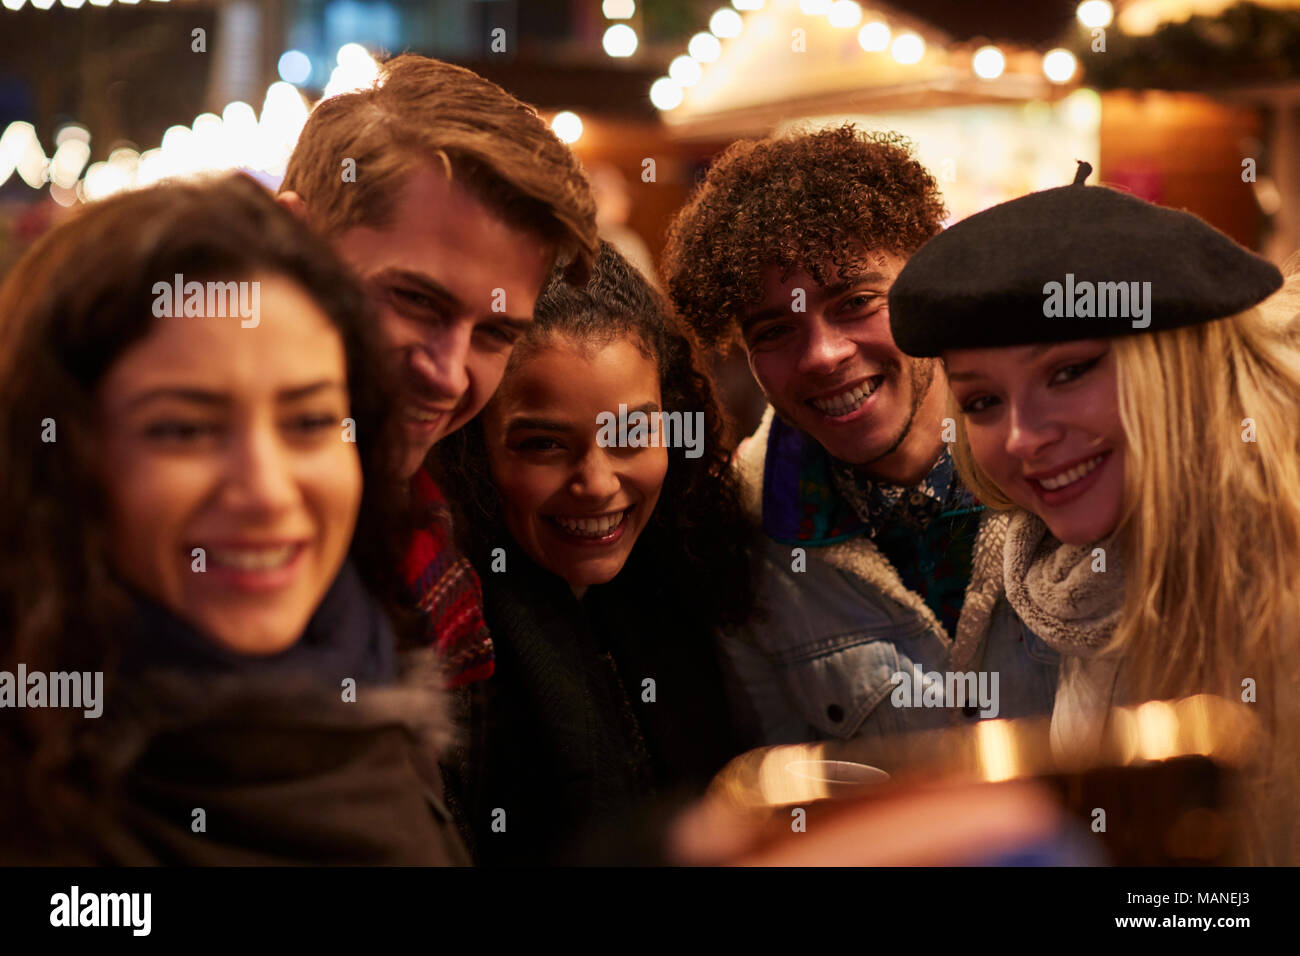 Young Friends Posing For Selfie At Christmas Market - Stock Image